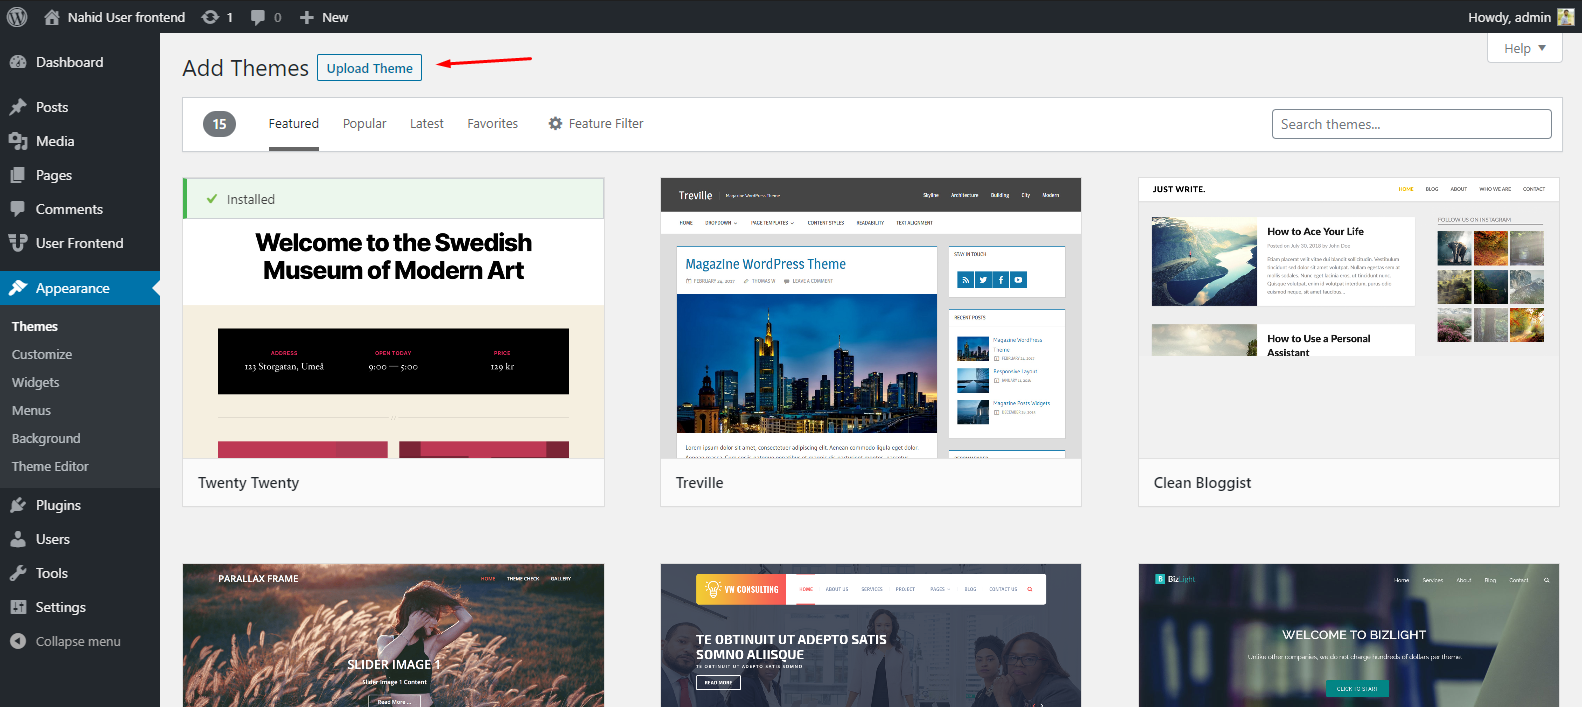 How to upload a theme a Nonprofit website